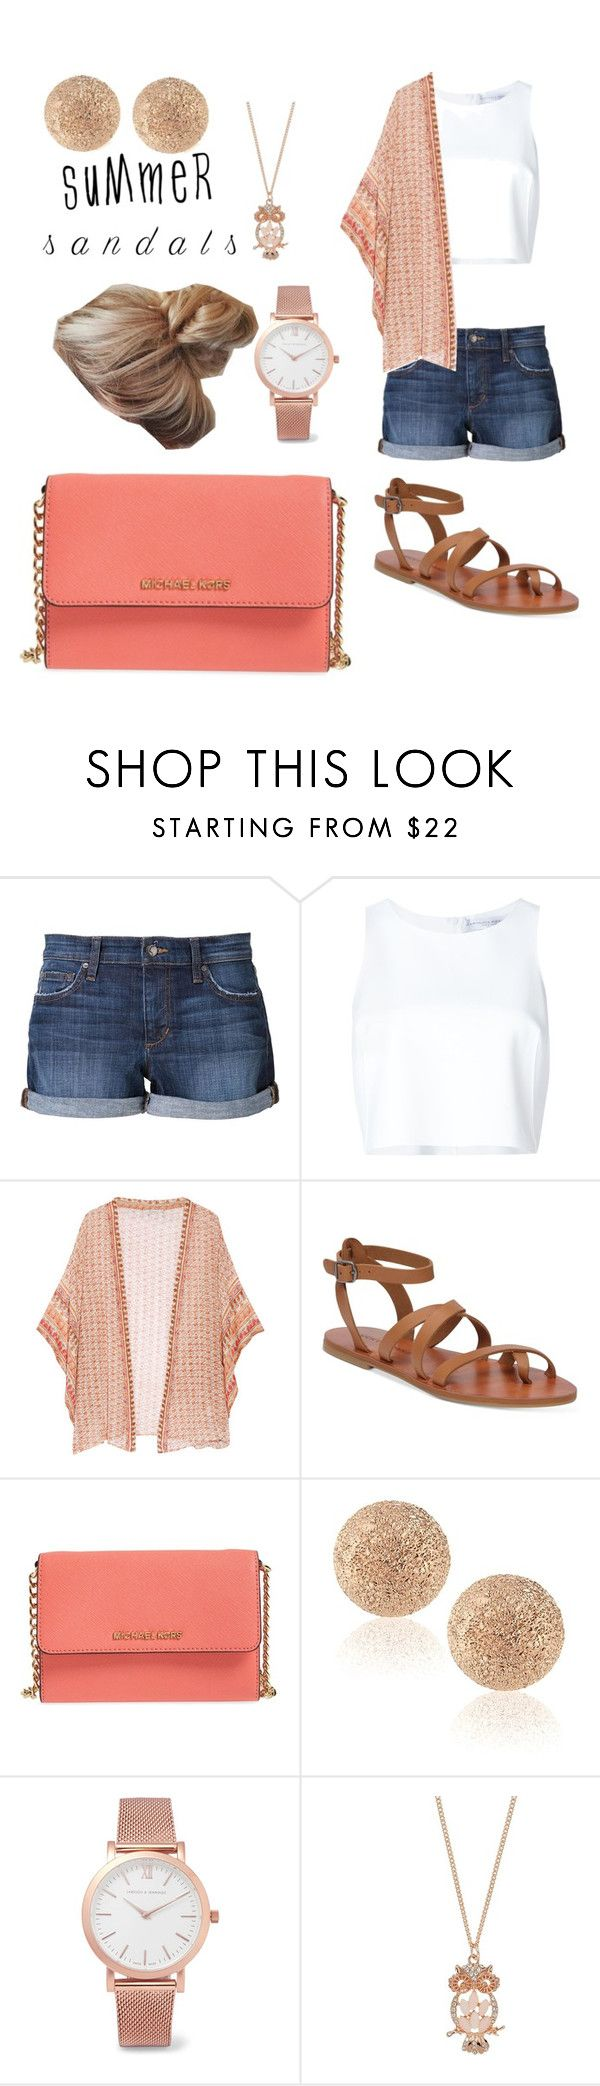 """Shopping Day"" by erinljudd on Polyvore featuring Joe's Jeans, Carolina Herrera, Mes Demoiselles..., Lucky Brand, MICHAEL Michael Kors, Carolina Bucci, Larsson & Jennings, LC Lauren Conrad and summersandals"